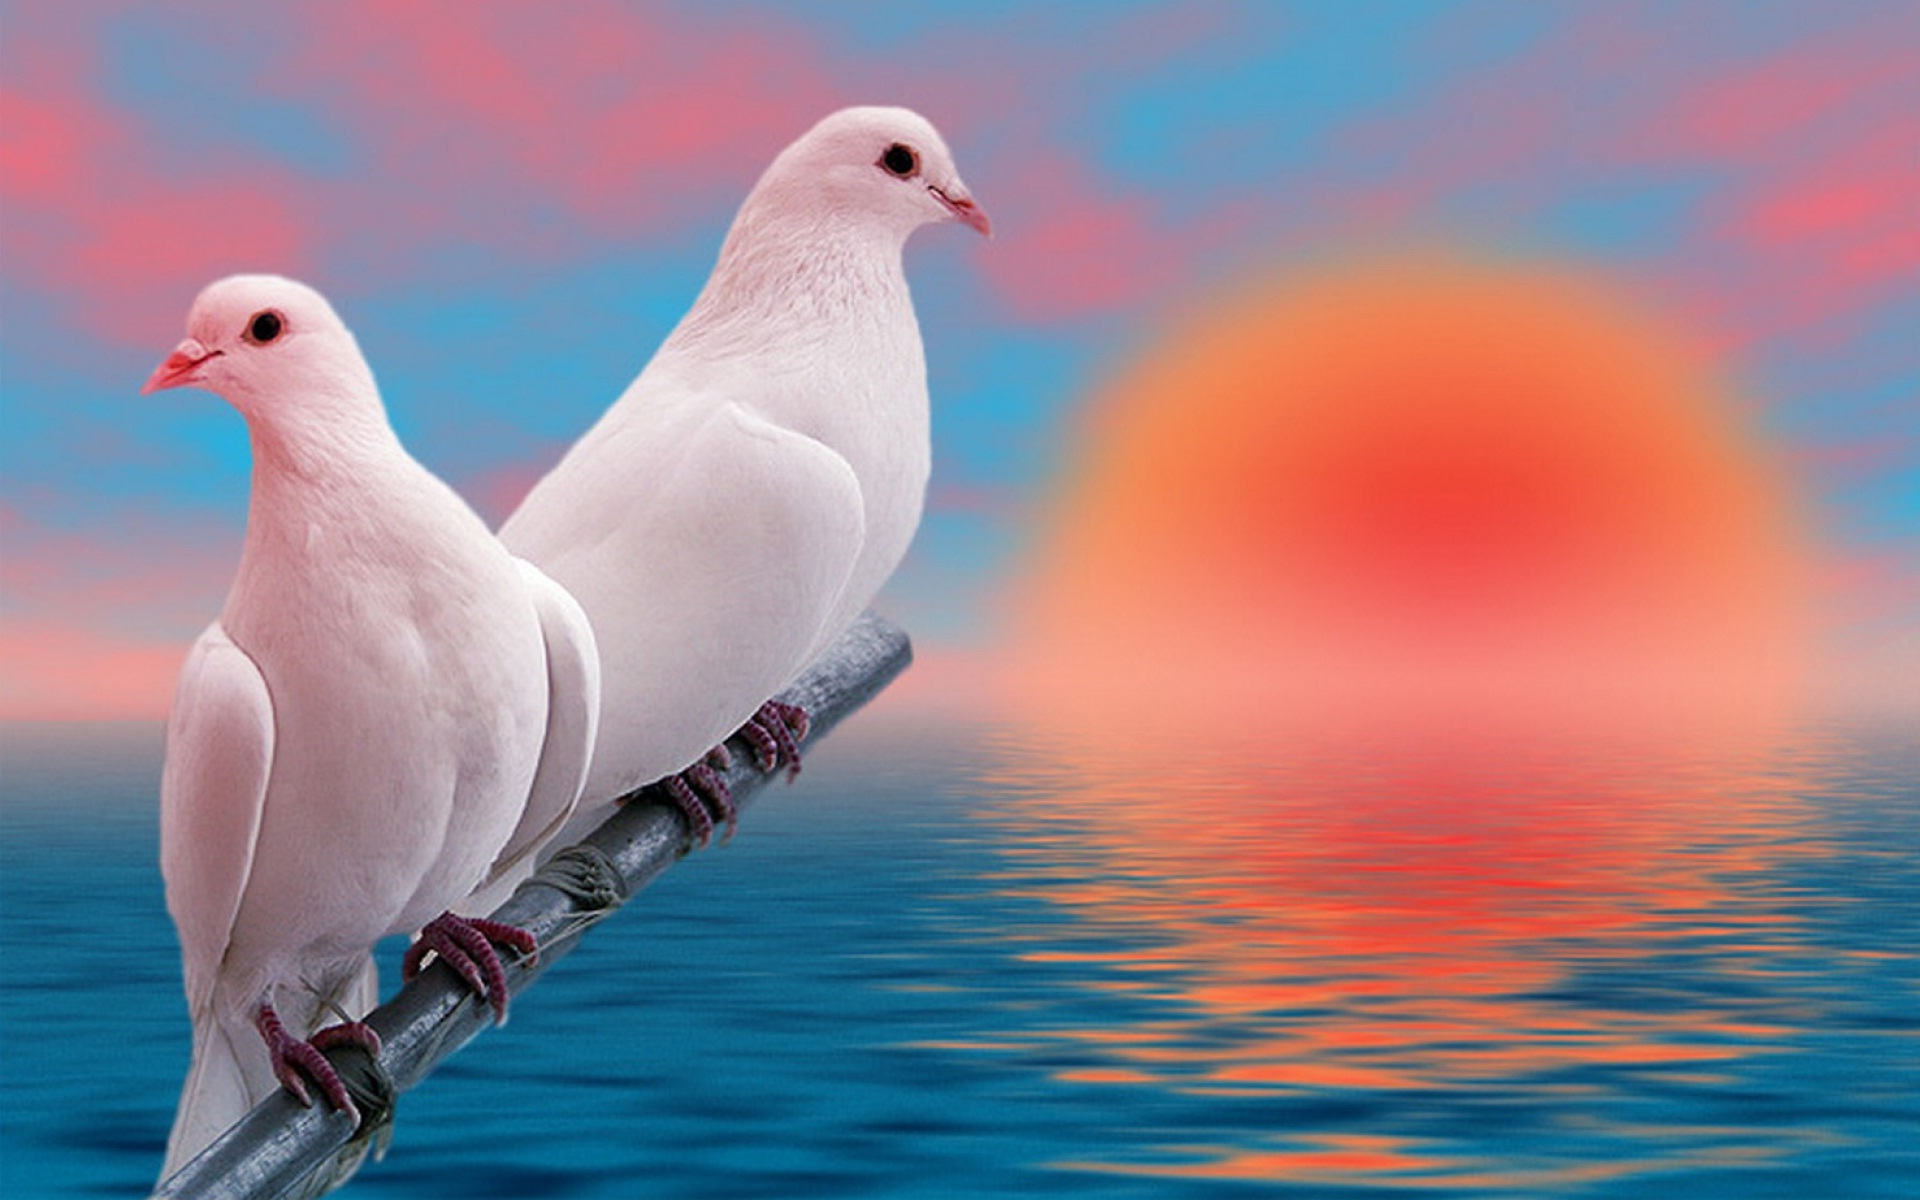 Free Download Love Bird Widescreen Background Wallpapers 1920x1200 For Your Desktop Mobile Tablet Explore 73 Wallpapers Of Love Birds Free Wallpapers And Screensavers Birds Free Love Screensavers And Wallpaper